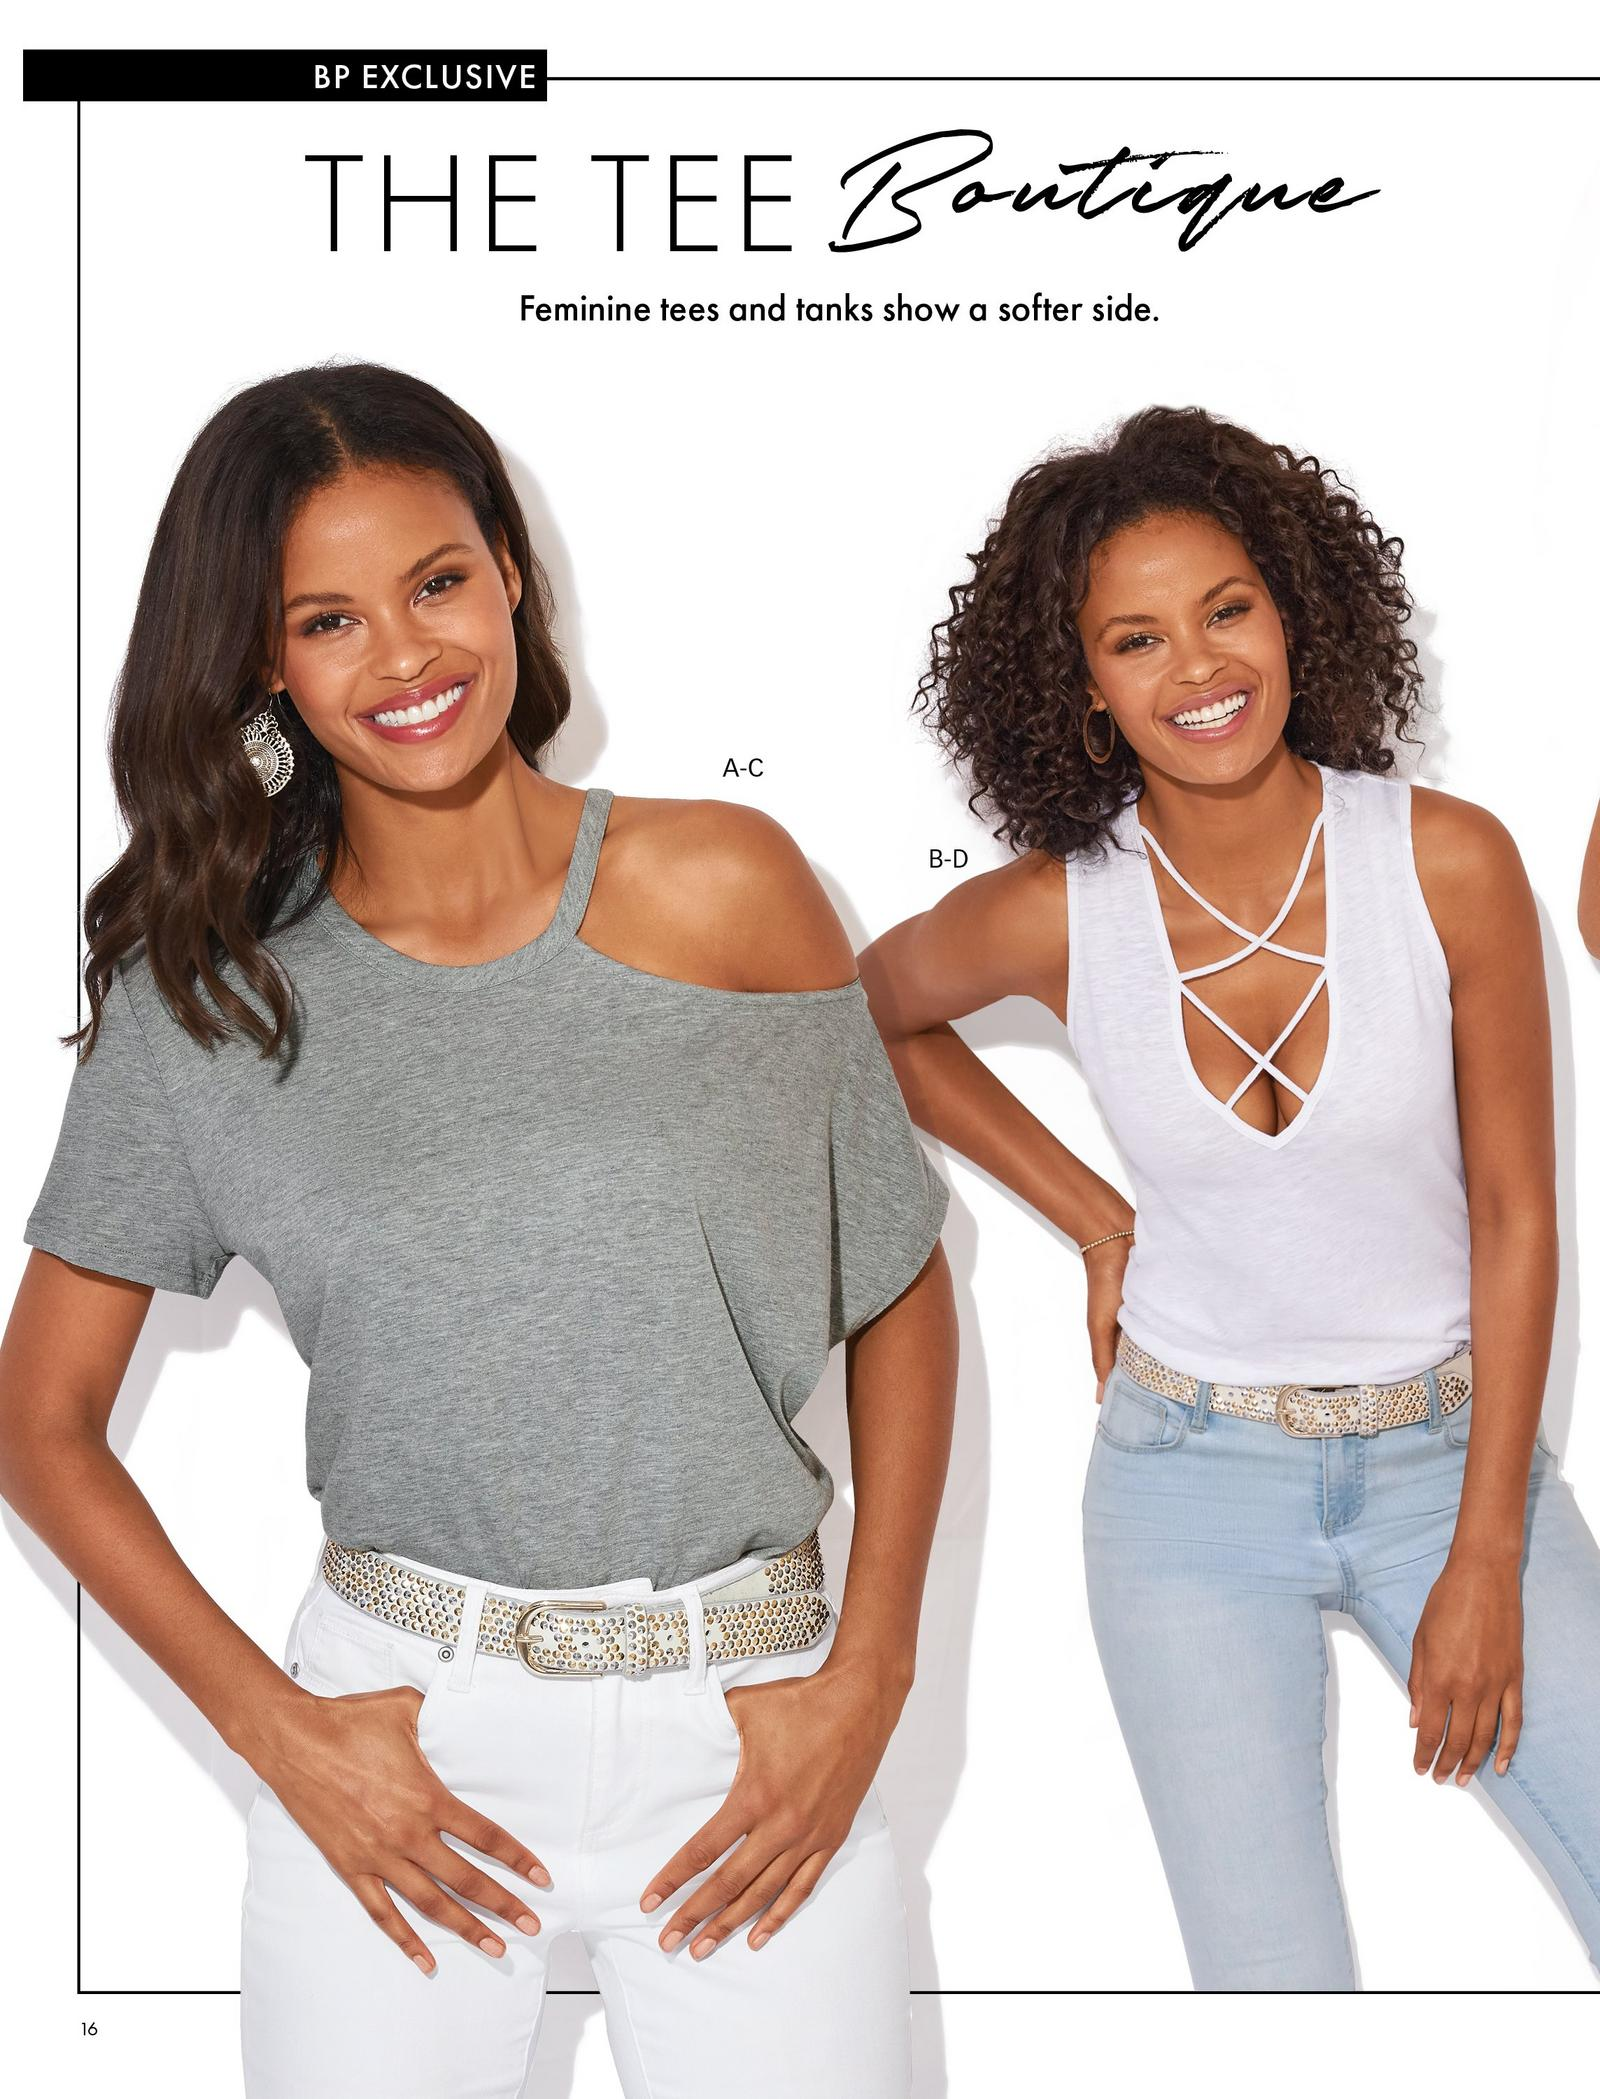 left model wearing a gray off-the-shoulder slub tee, white and gold studded belt, and white jeans. right model wearing a white x-neck slub tank top, white and gold studded belt, and light wash jeans.